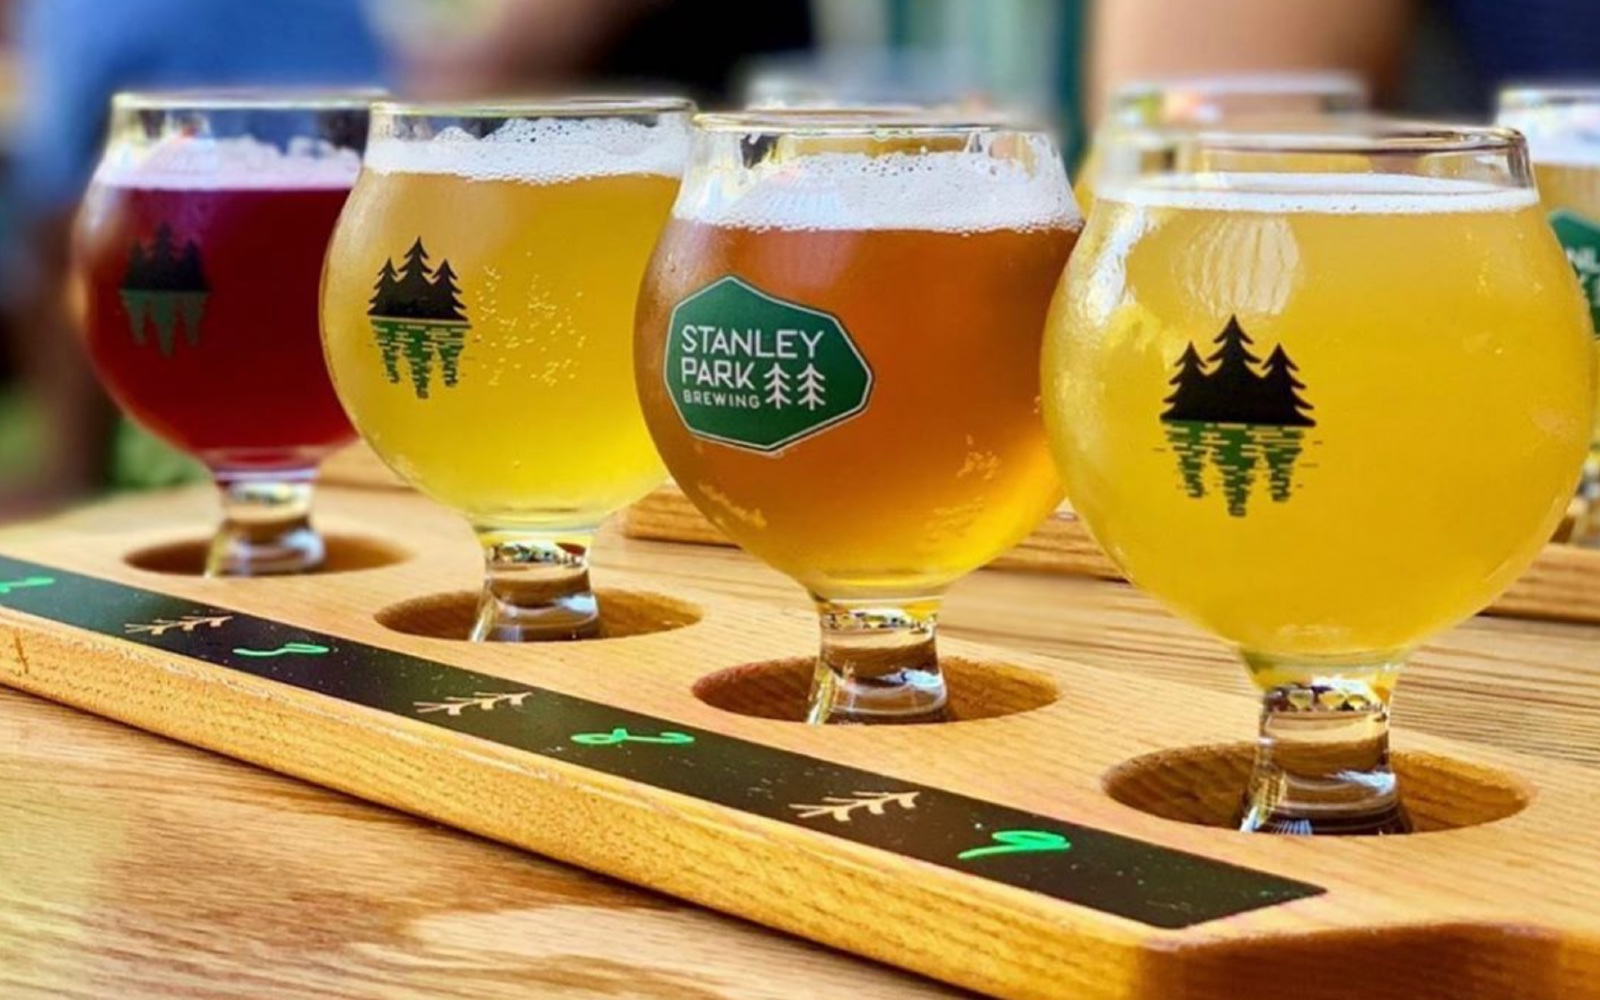 A flight of beers from Stanley Park Brewing